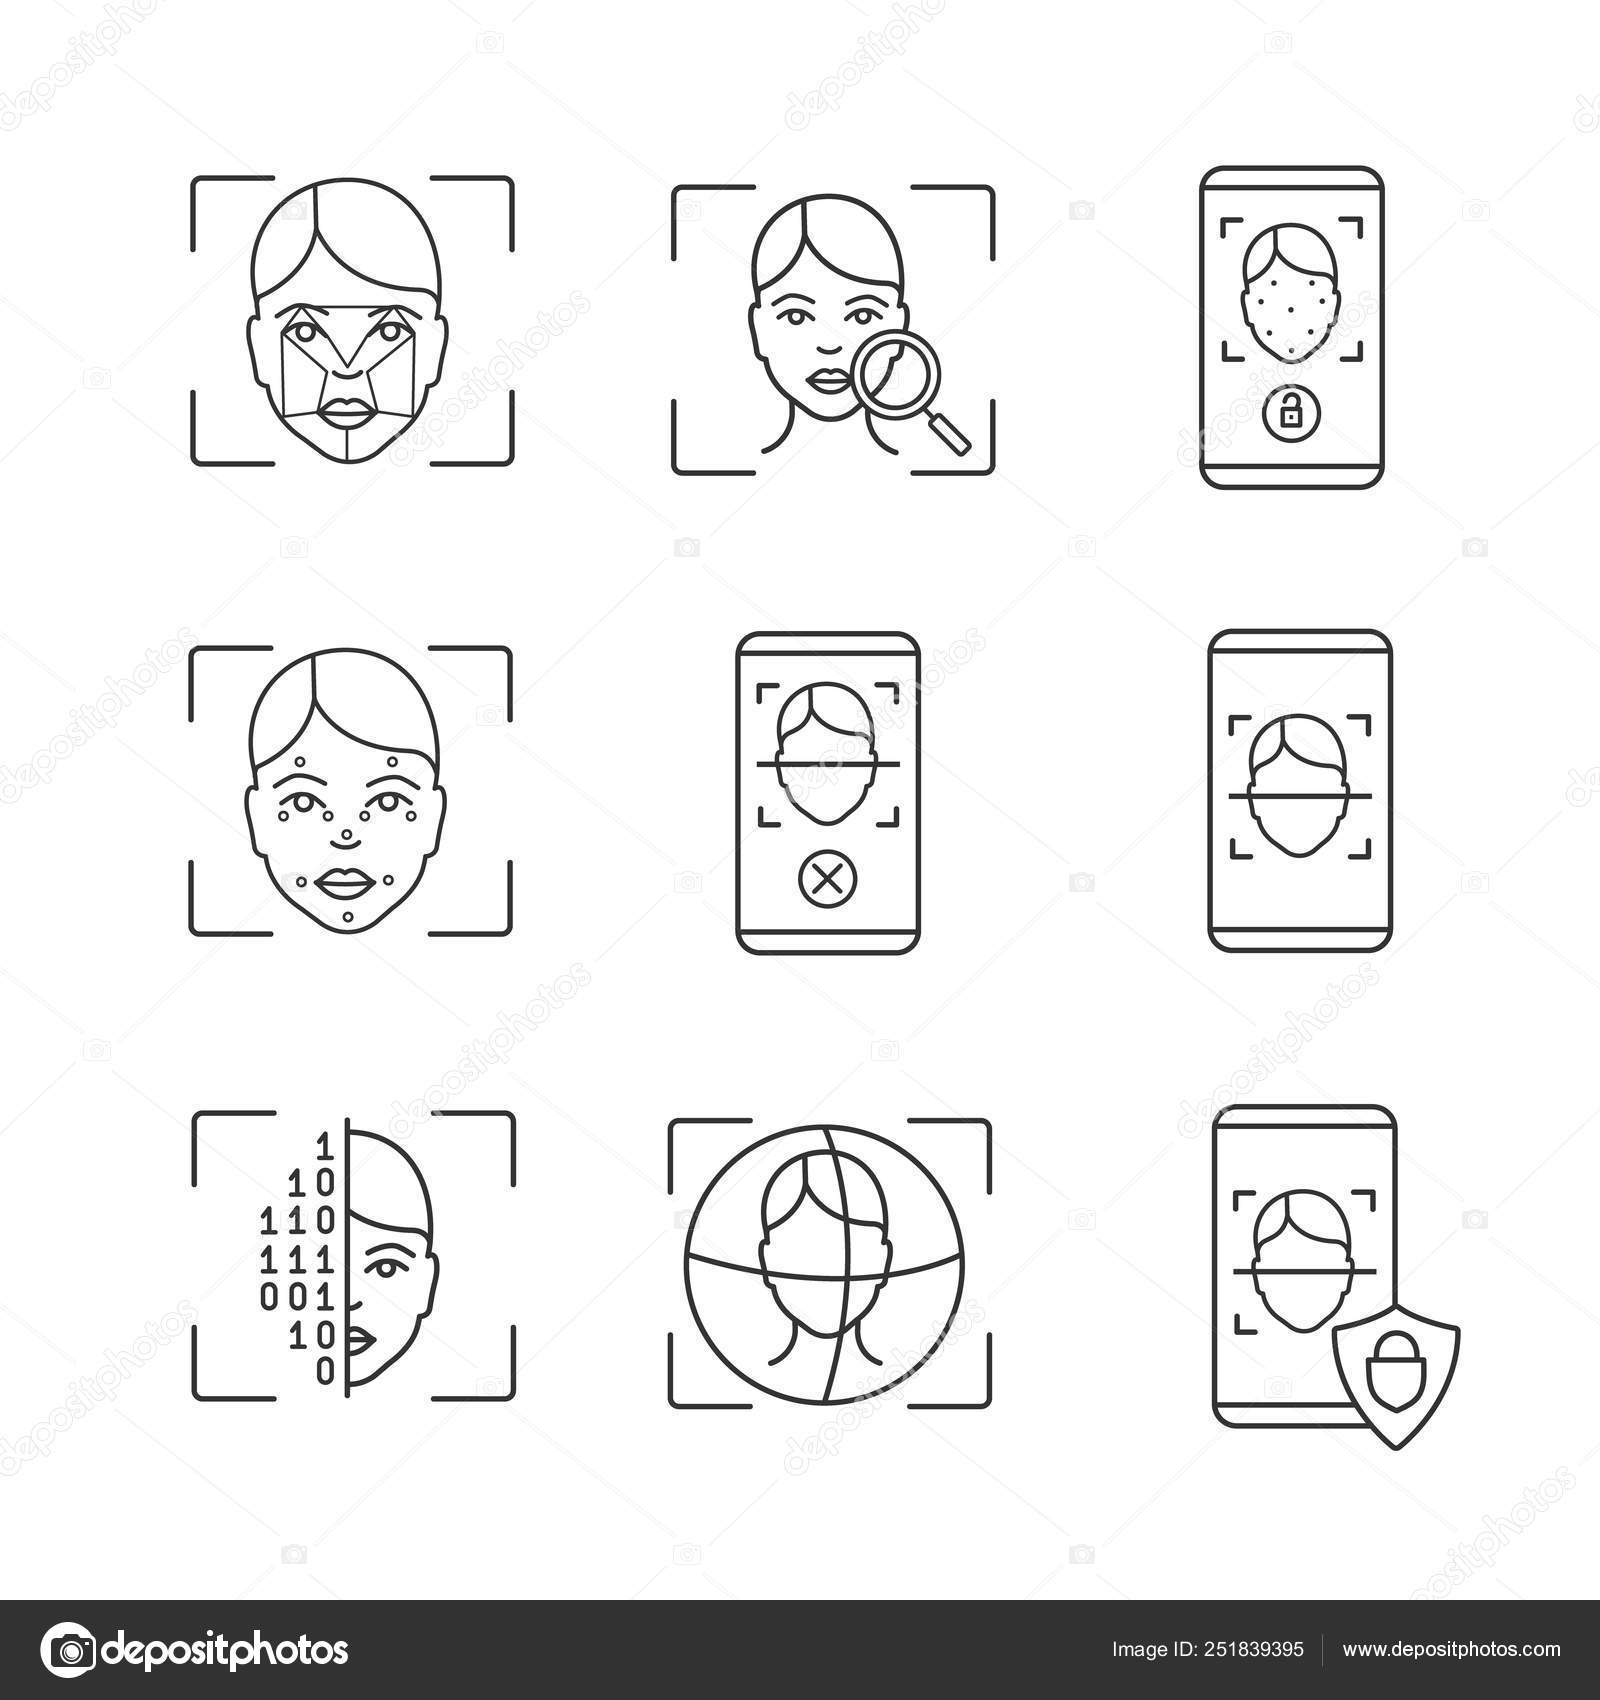 Facial Recognition Linear Icons Set Thin Line Contour